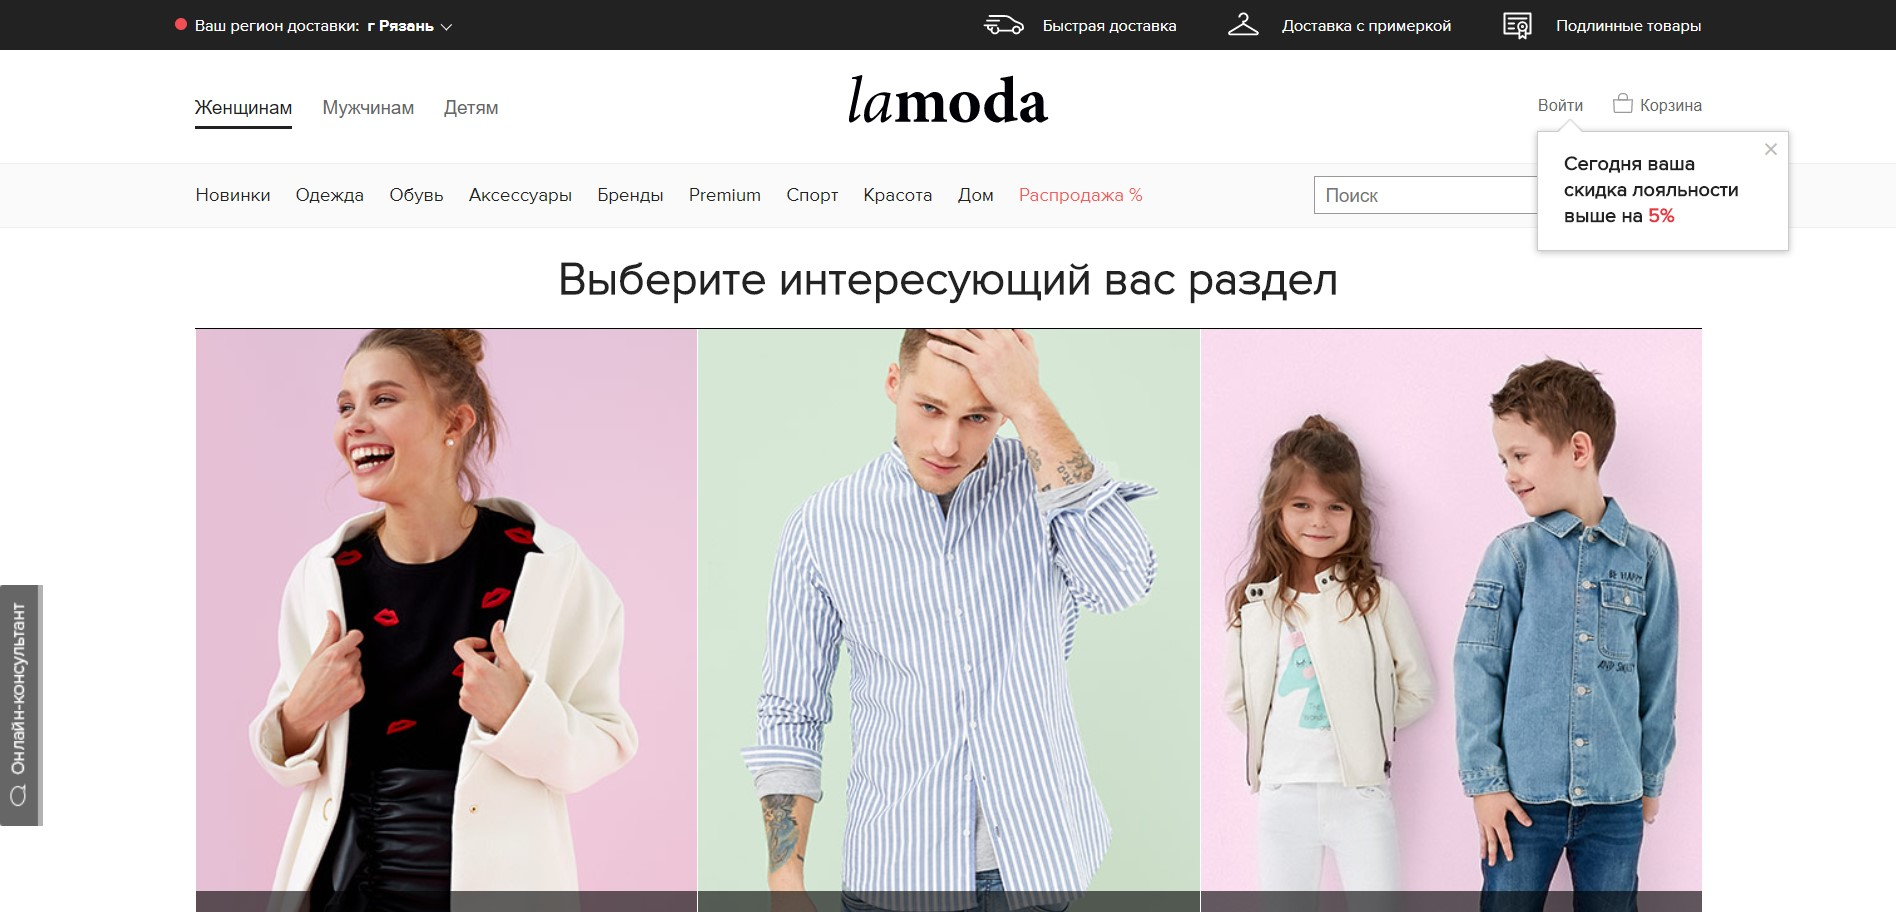 Pop-up Lamoda